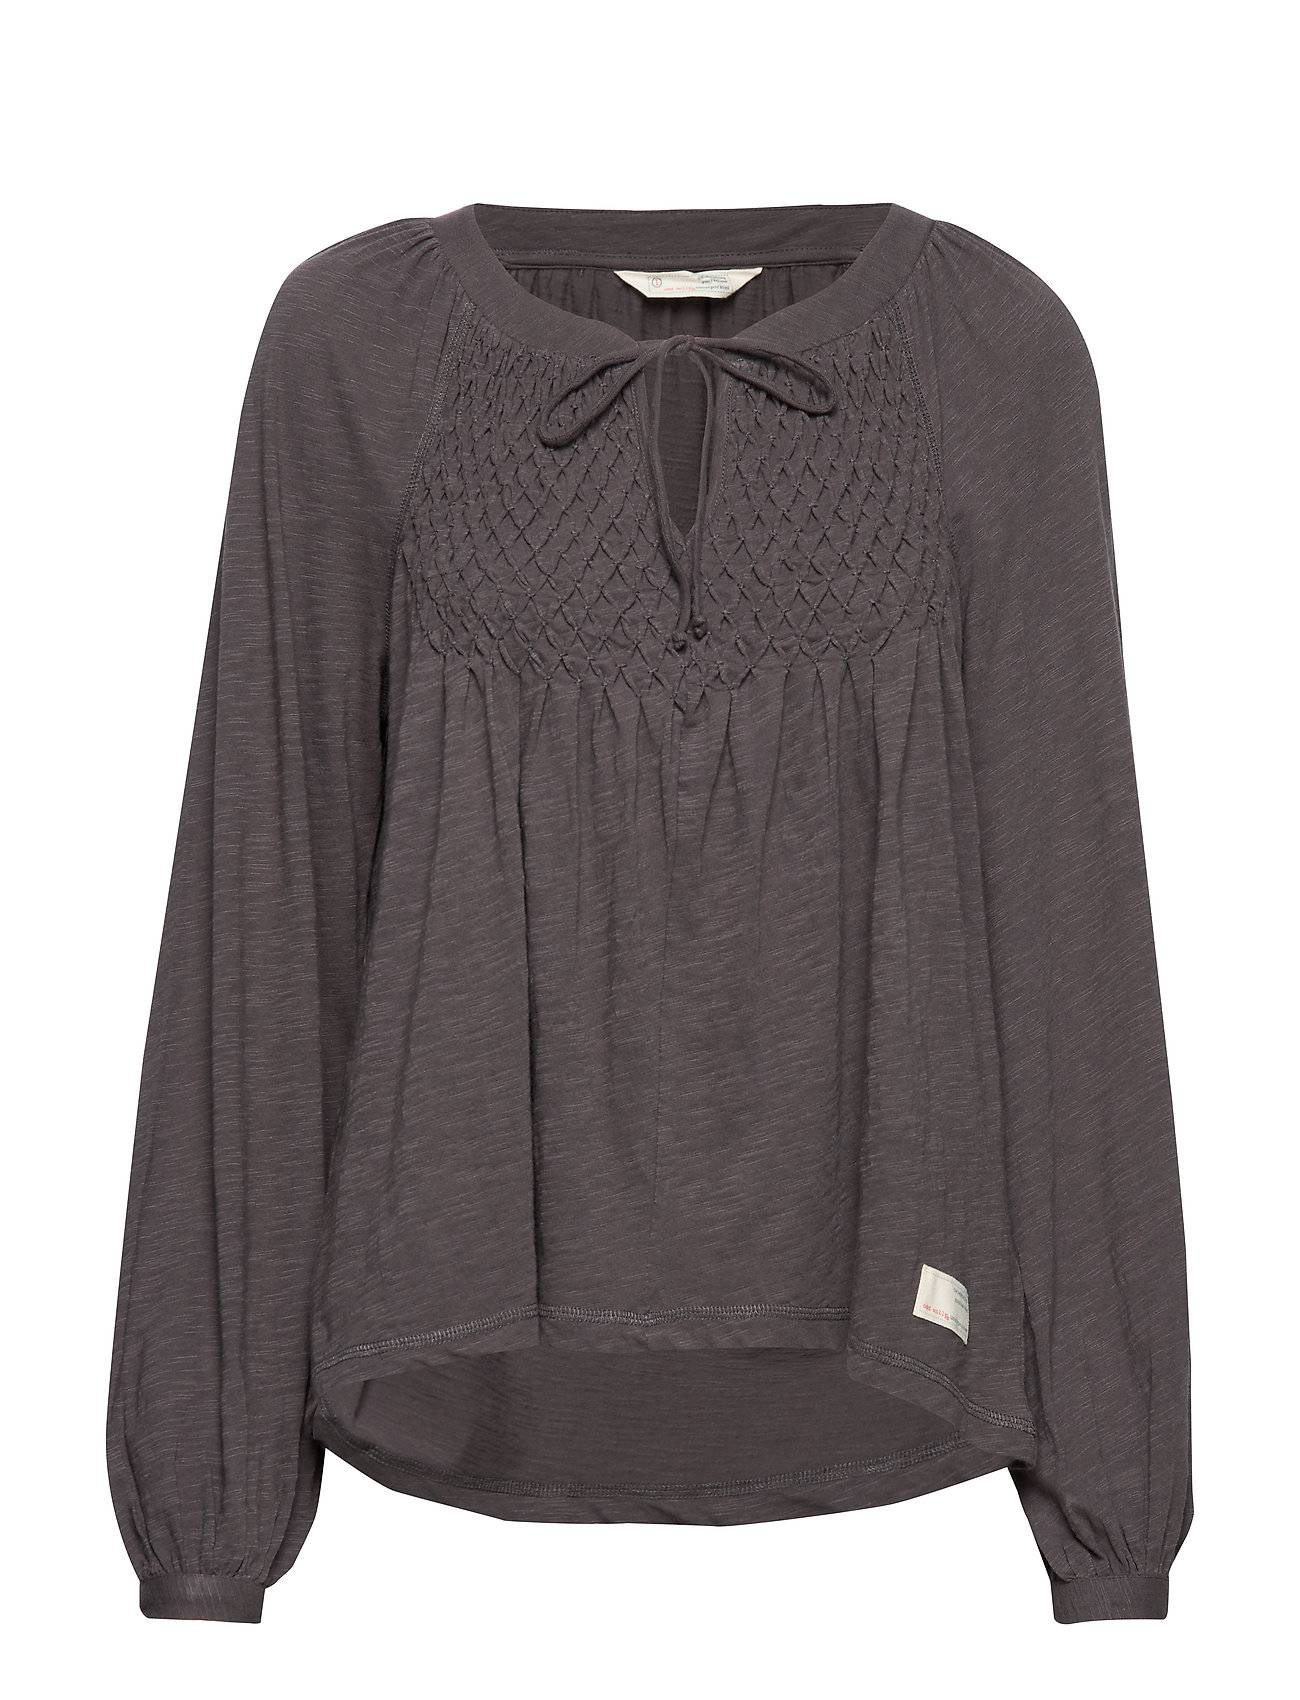 Image of ODD MOLLY I Call It Life Blouse T-shirts & Tops Long-sleeved Harmaa ODD MOLLY